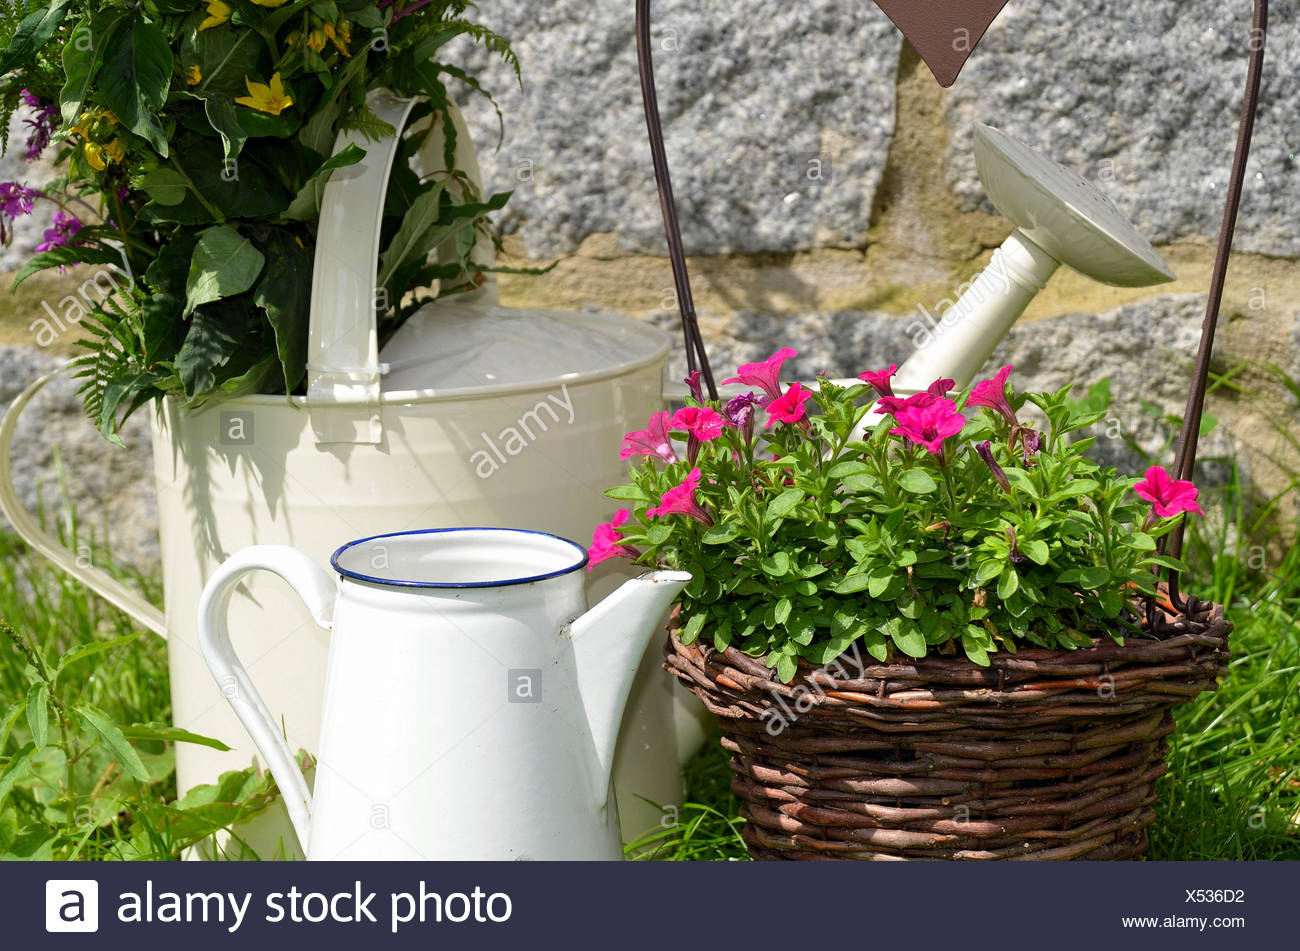 Decoration Jardin Pot Décoration De Jardin Pot De Fleurs Banque D Images Photo Stock